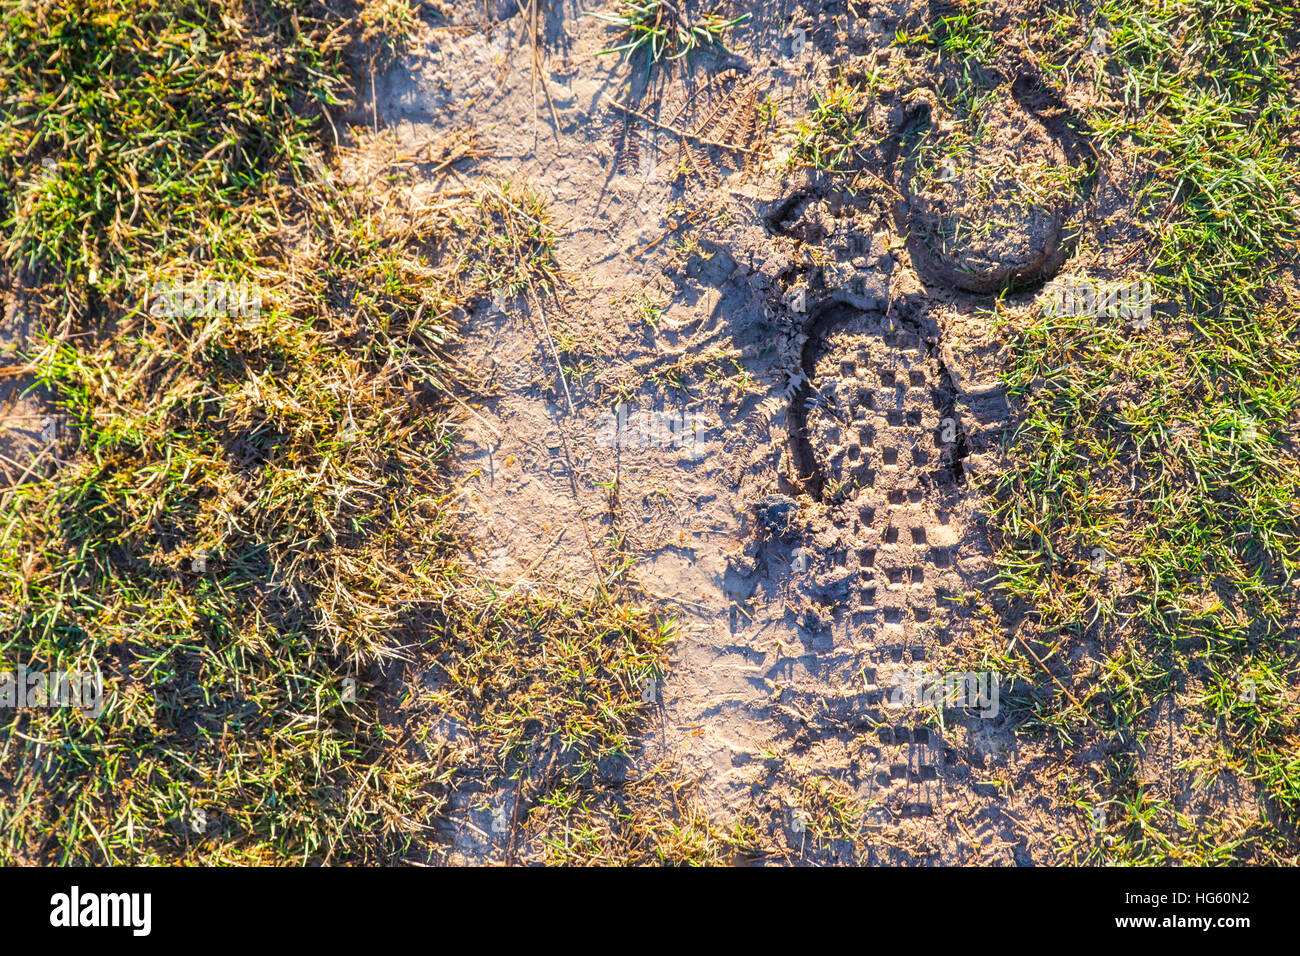 Bridleway footprints showing Mountain Bike and Horse Shoe prints. - Stock Image